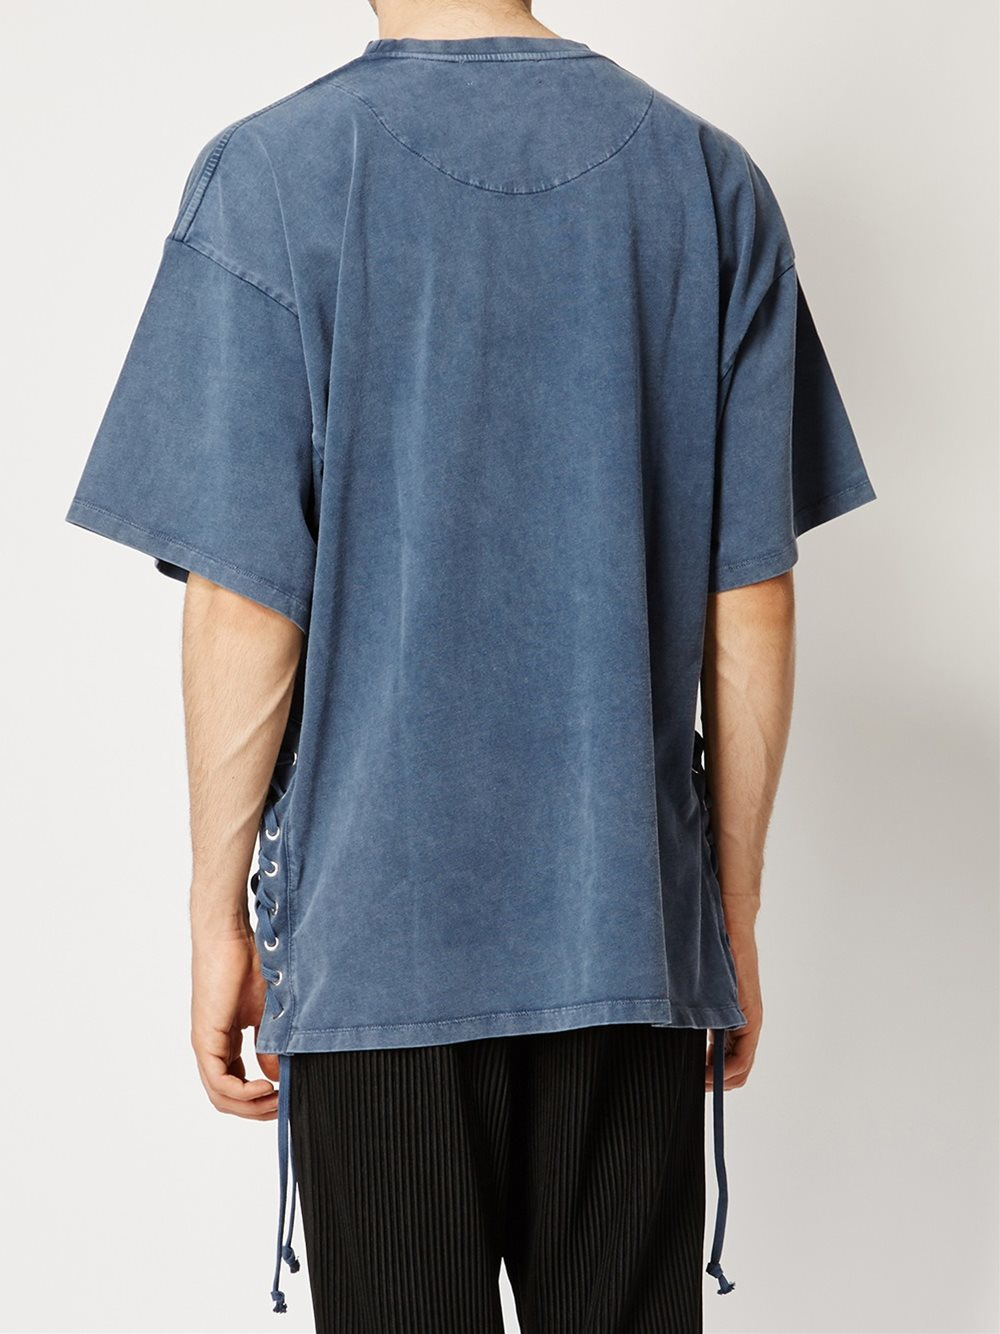 Faith Connexion Lace Up Side T Shirt In Blue For Men Lyst